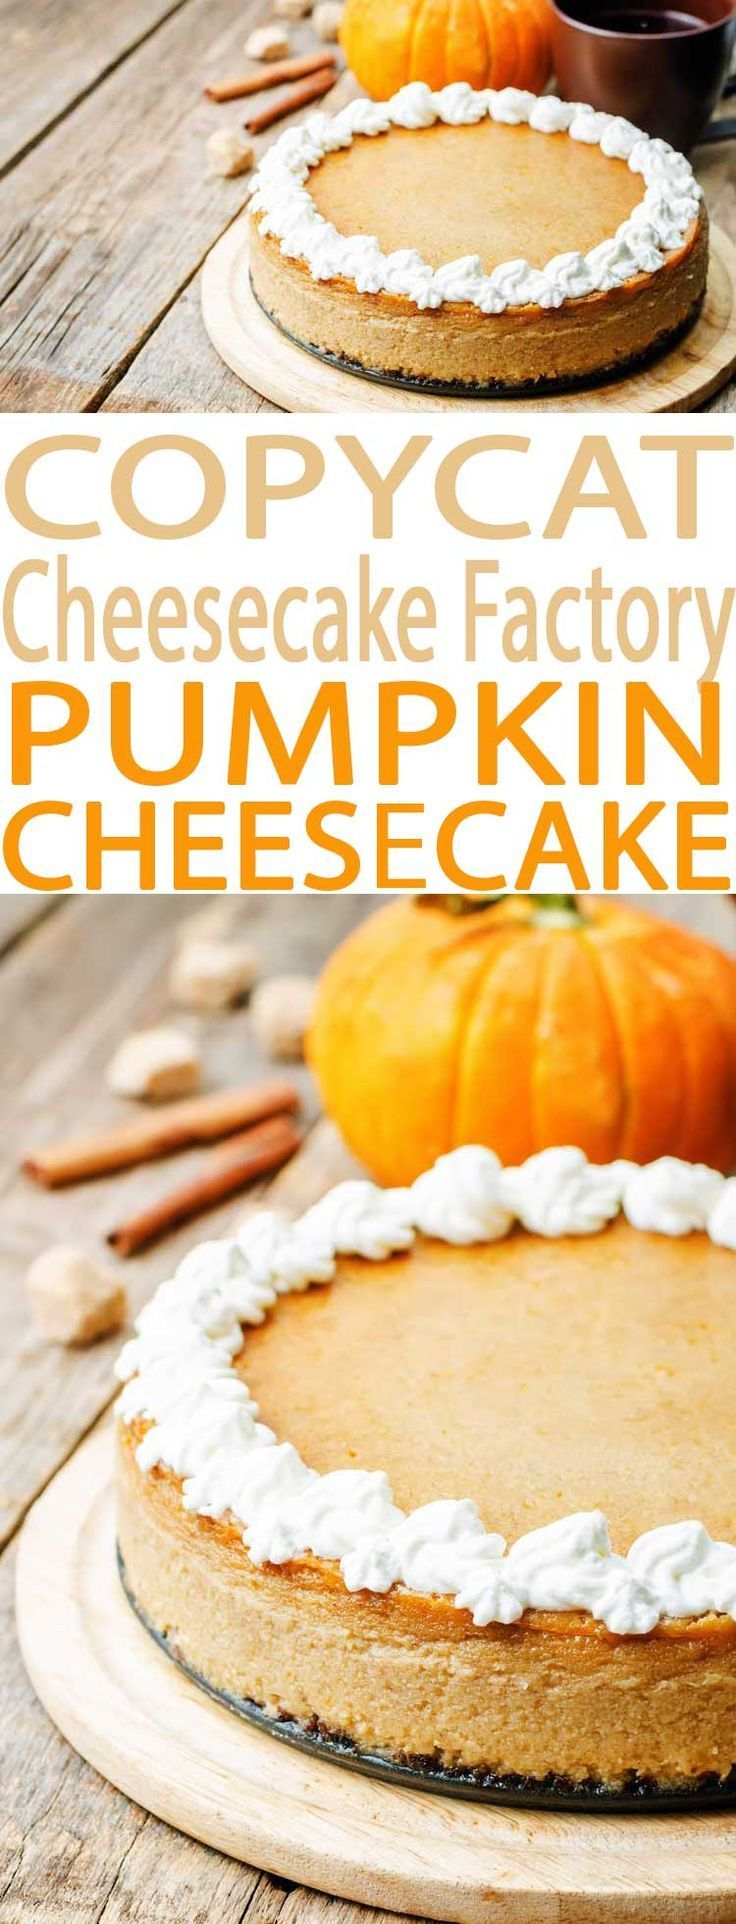 Everyone loves this Pumpkin Cheesecake Factory Copycat Recipe. It's just like the restaurant's pumpkin cheesecake and is an easy to make recipe. (Christmas Recipes Easy)